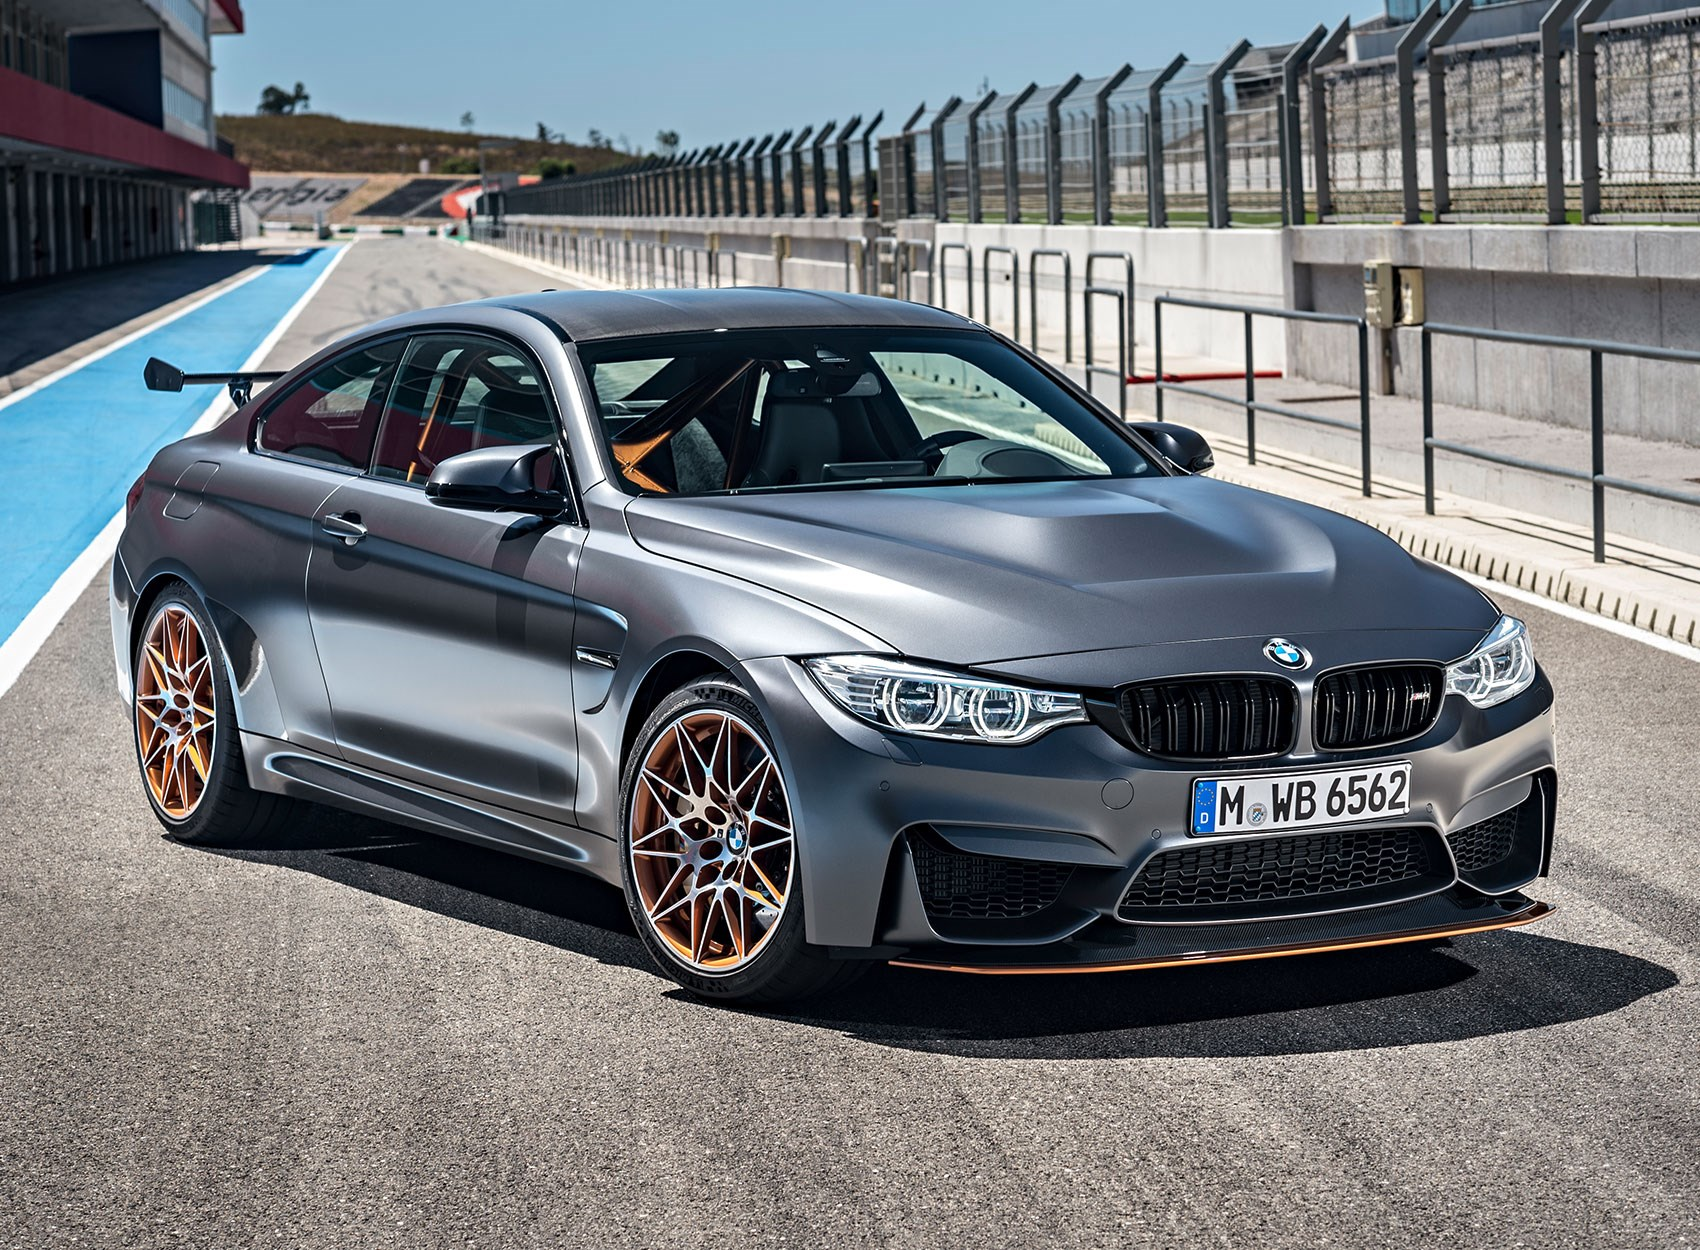 bmw m4 gts (2016): officially the fastest bmw road car ever | car